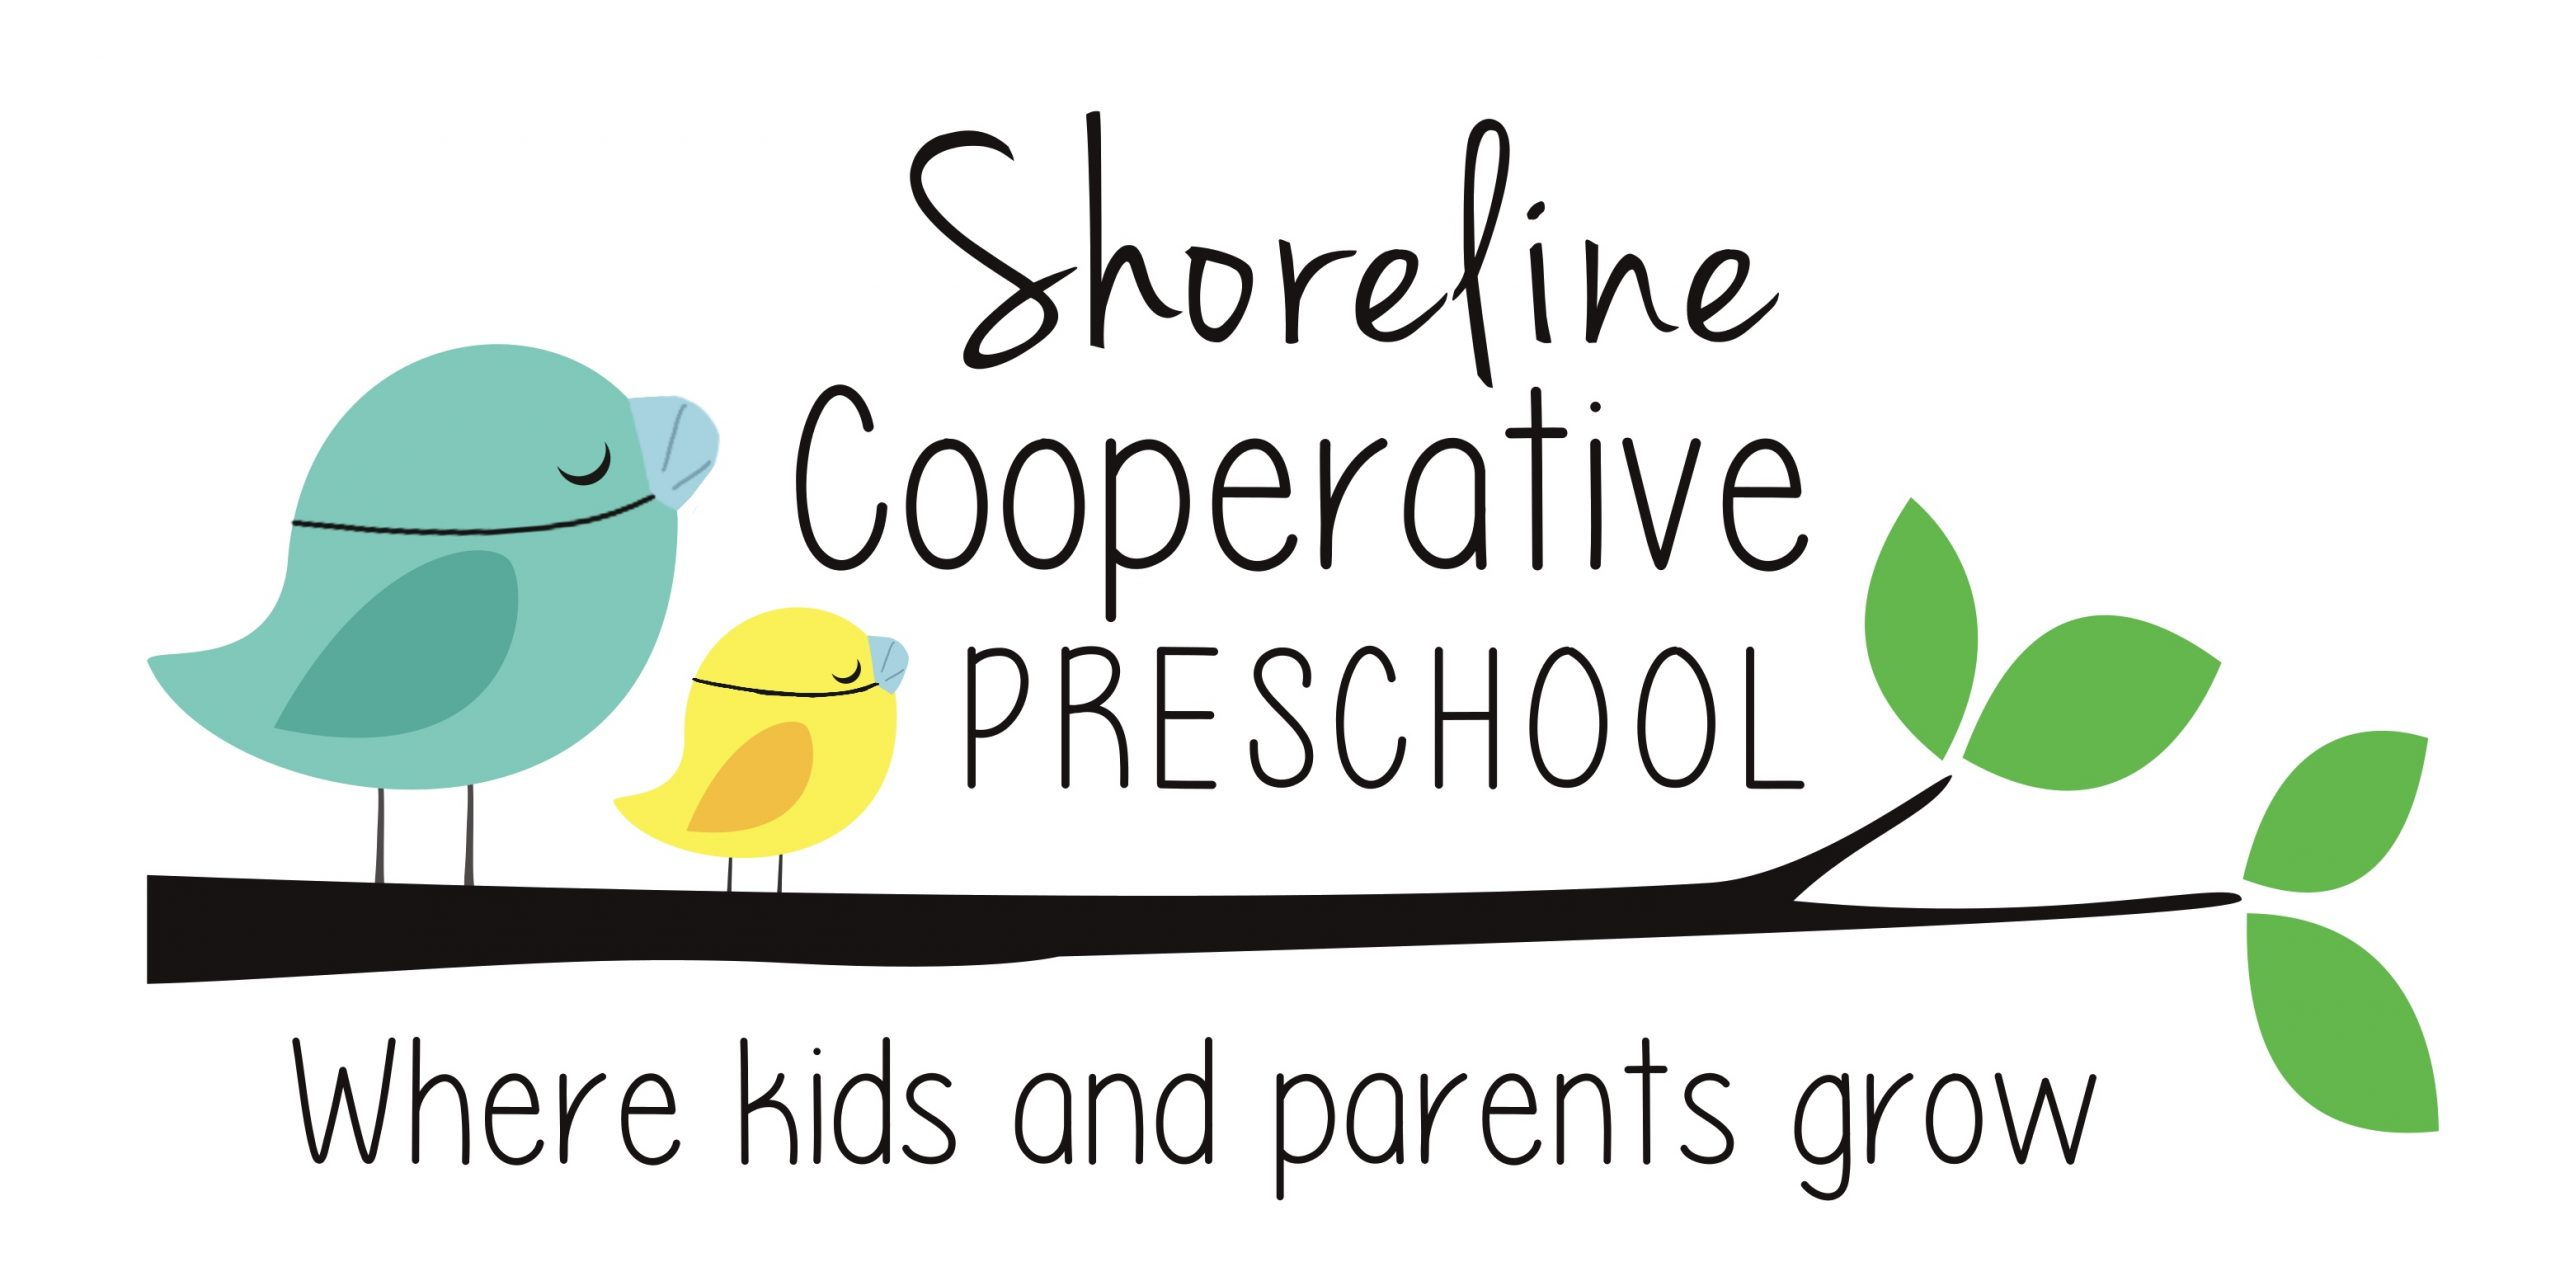 Shoreline Cooperative Preschool Logo